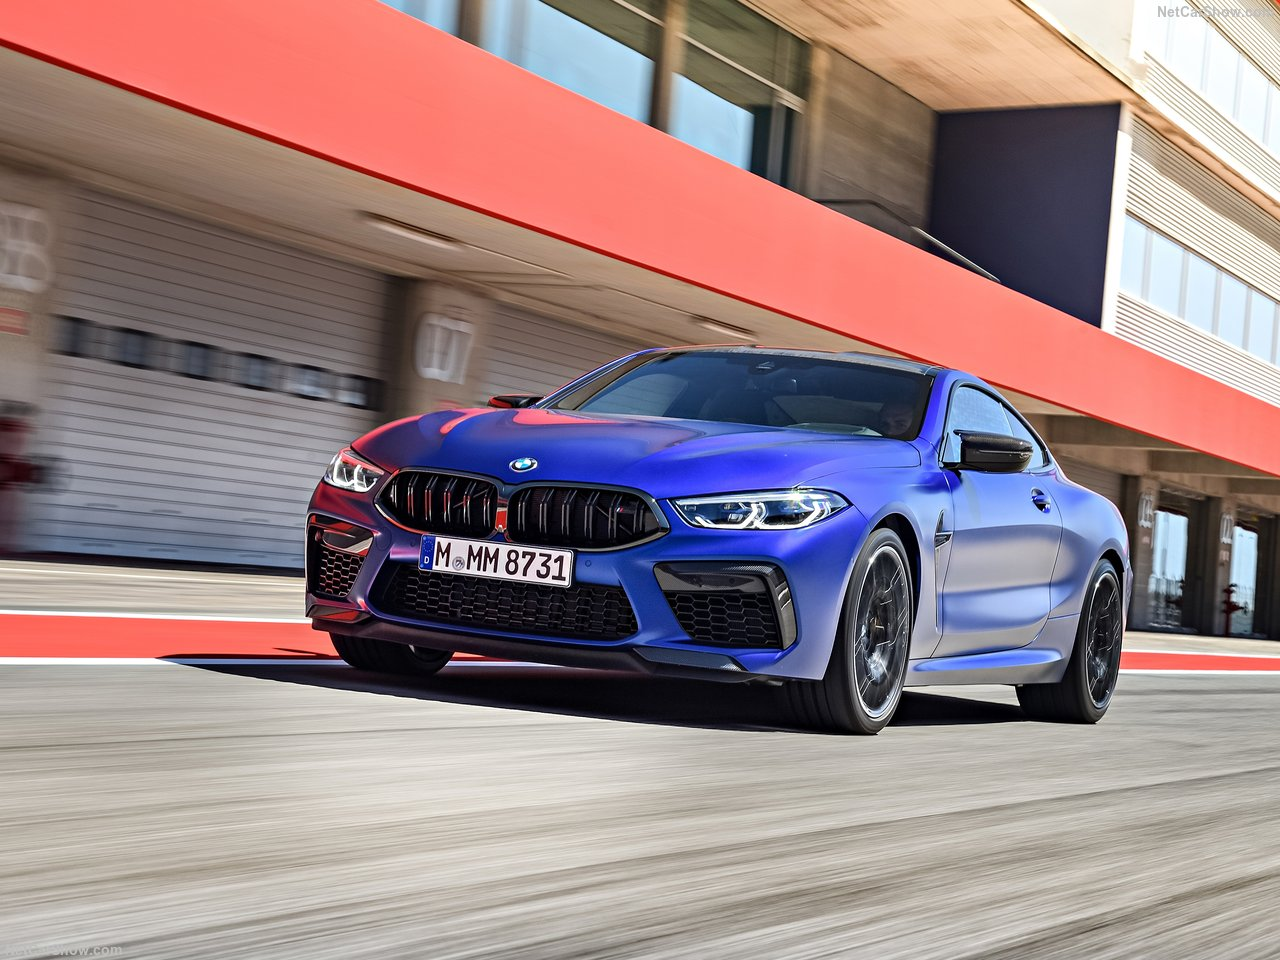 bmw-m8-competition-coupe-2020-1280-43.jpg